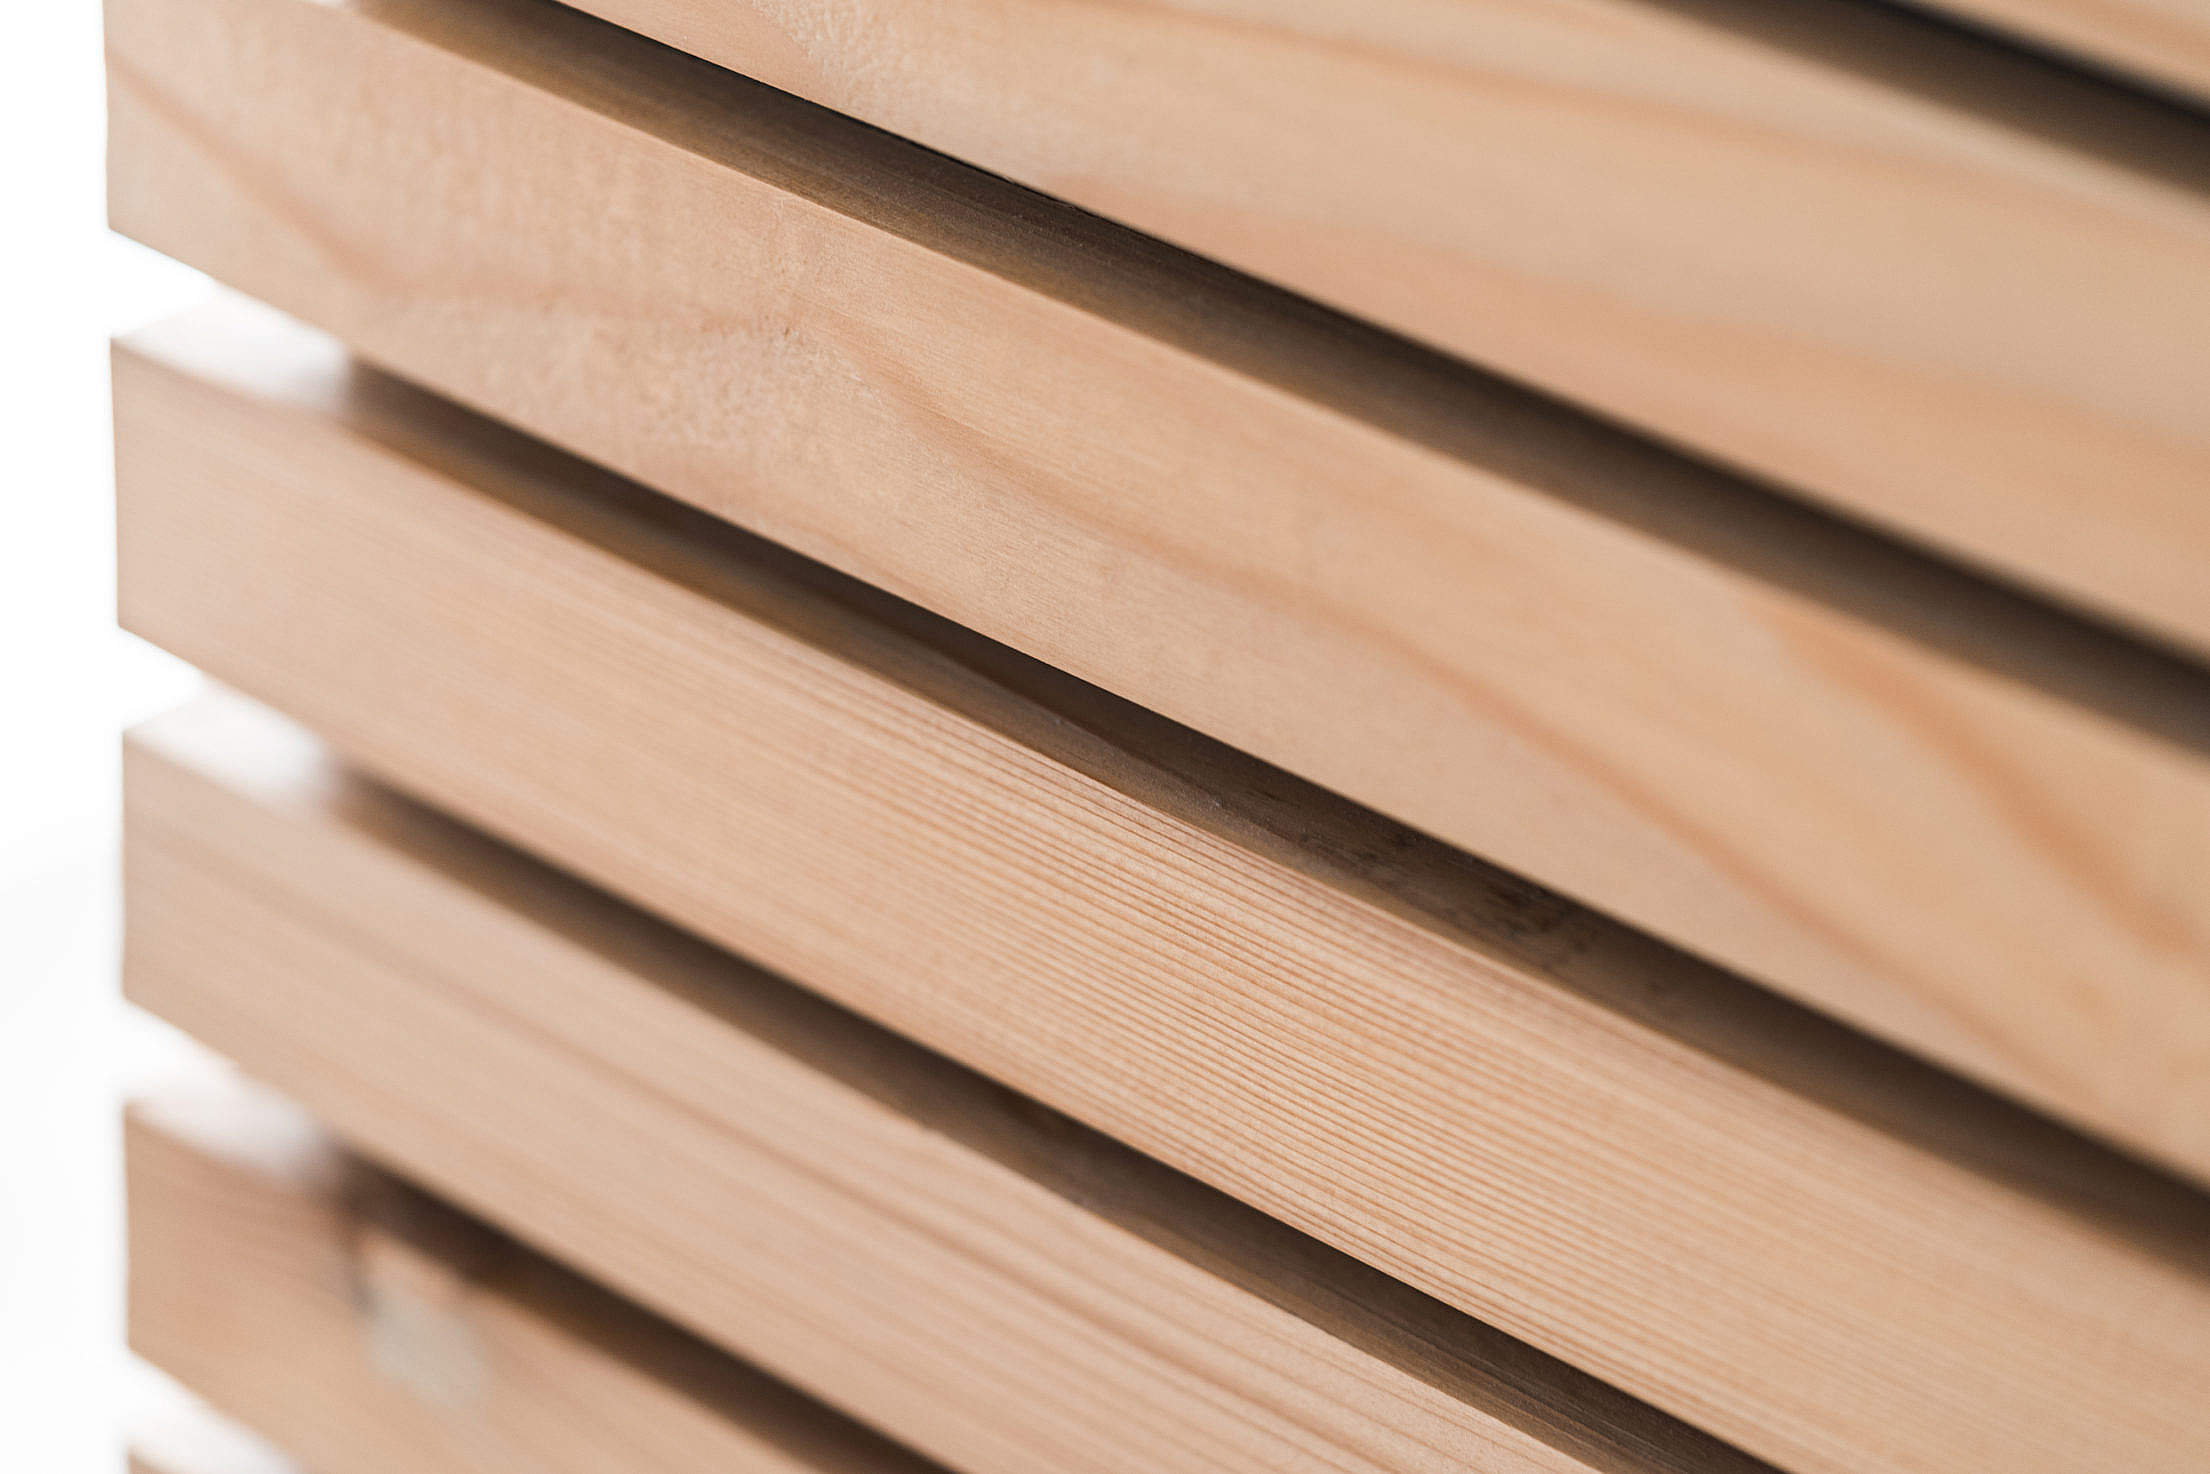 Wooden Lines Modern Interior Design Pattern Free Stock Photo